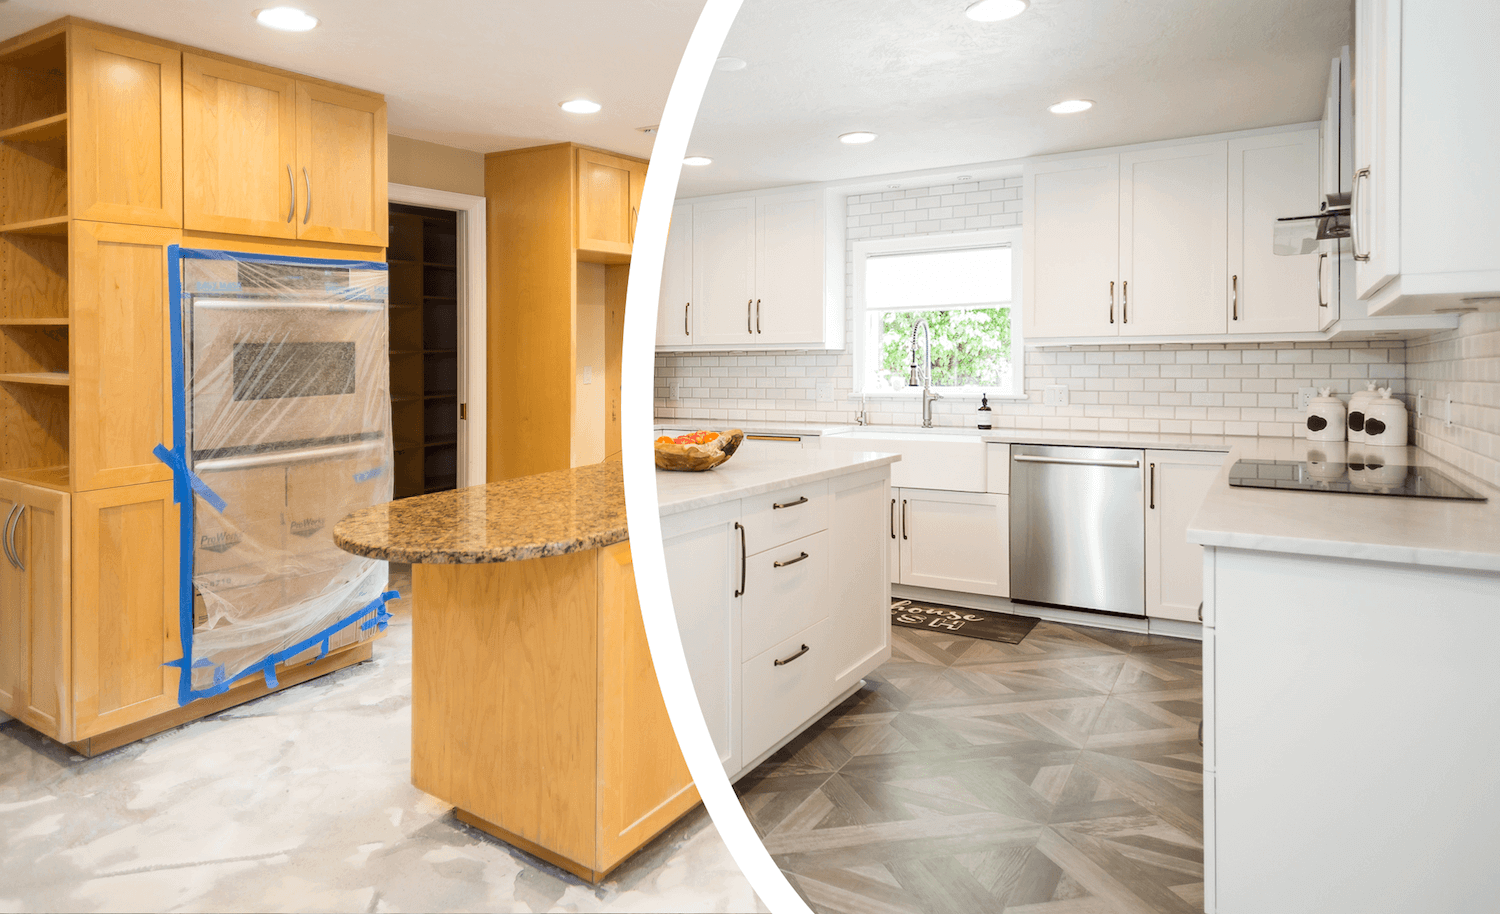 Kitchen Cabinet Refinishing-Wellington Kitchen & Bath Home Remodeling Solutions-We do kitchen & bath remodeling, home renovations, custom lighting, custom cabinet installation, cabinet refacing and refinishing, outdoor kitchens, commercial kitchen, countertops, and more